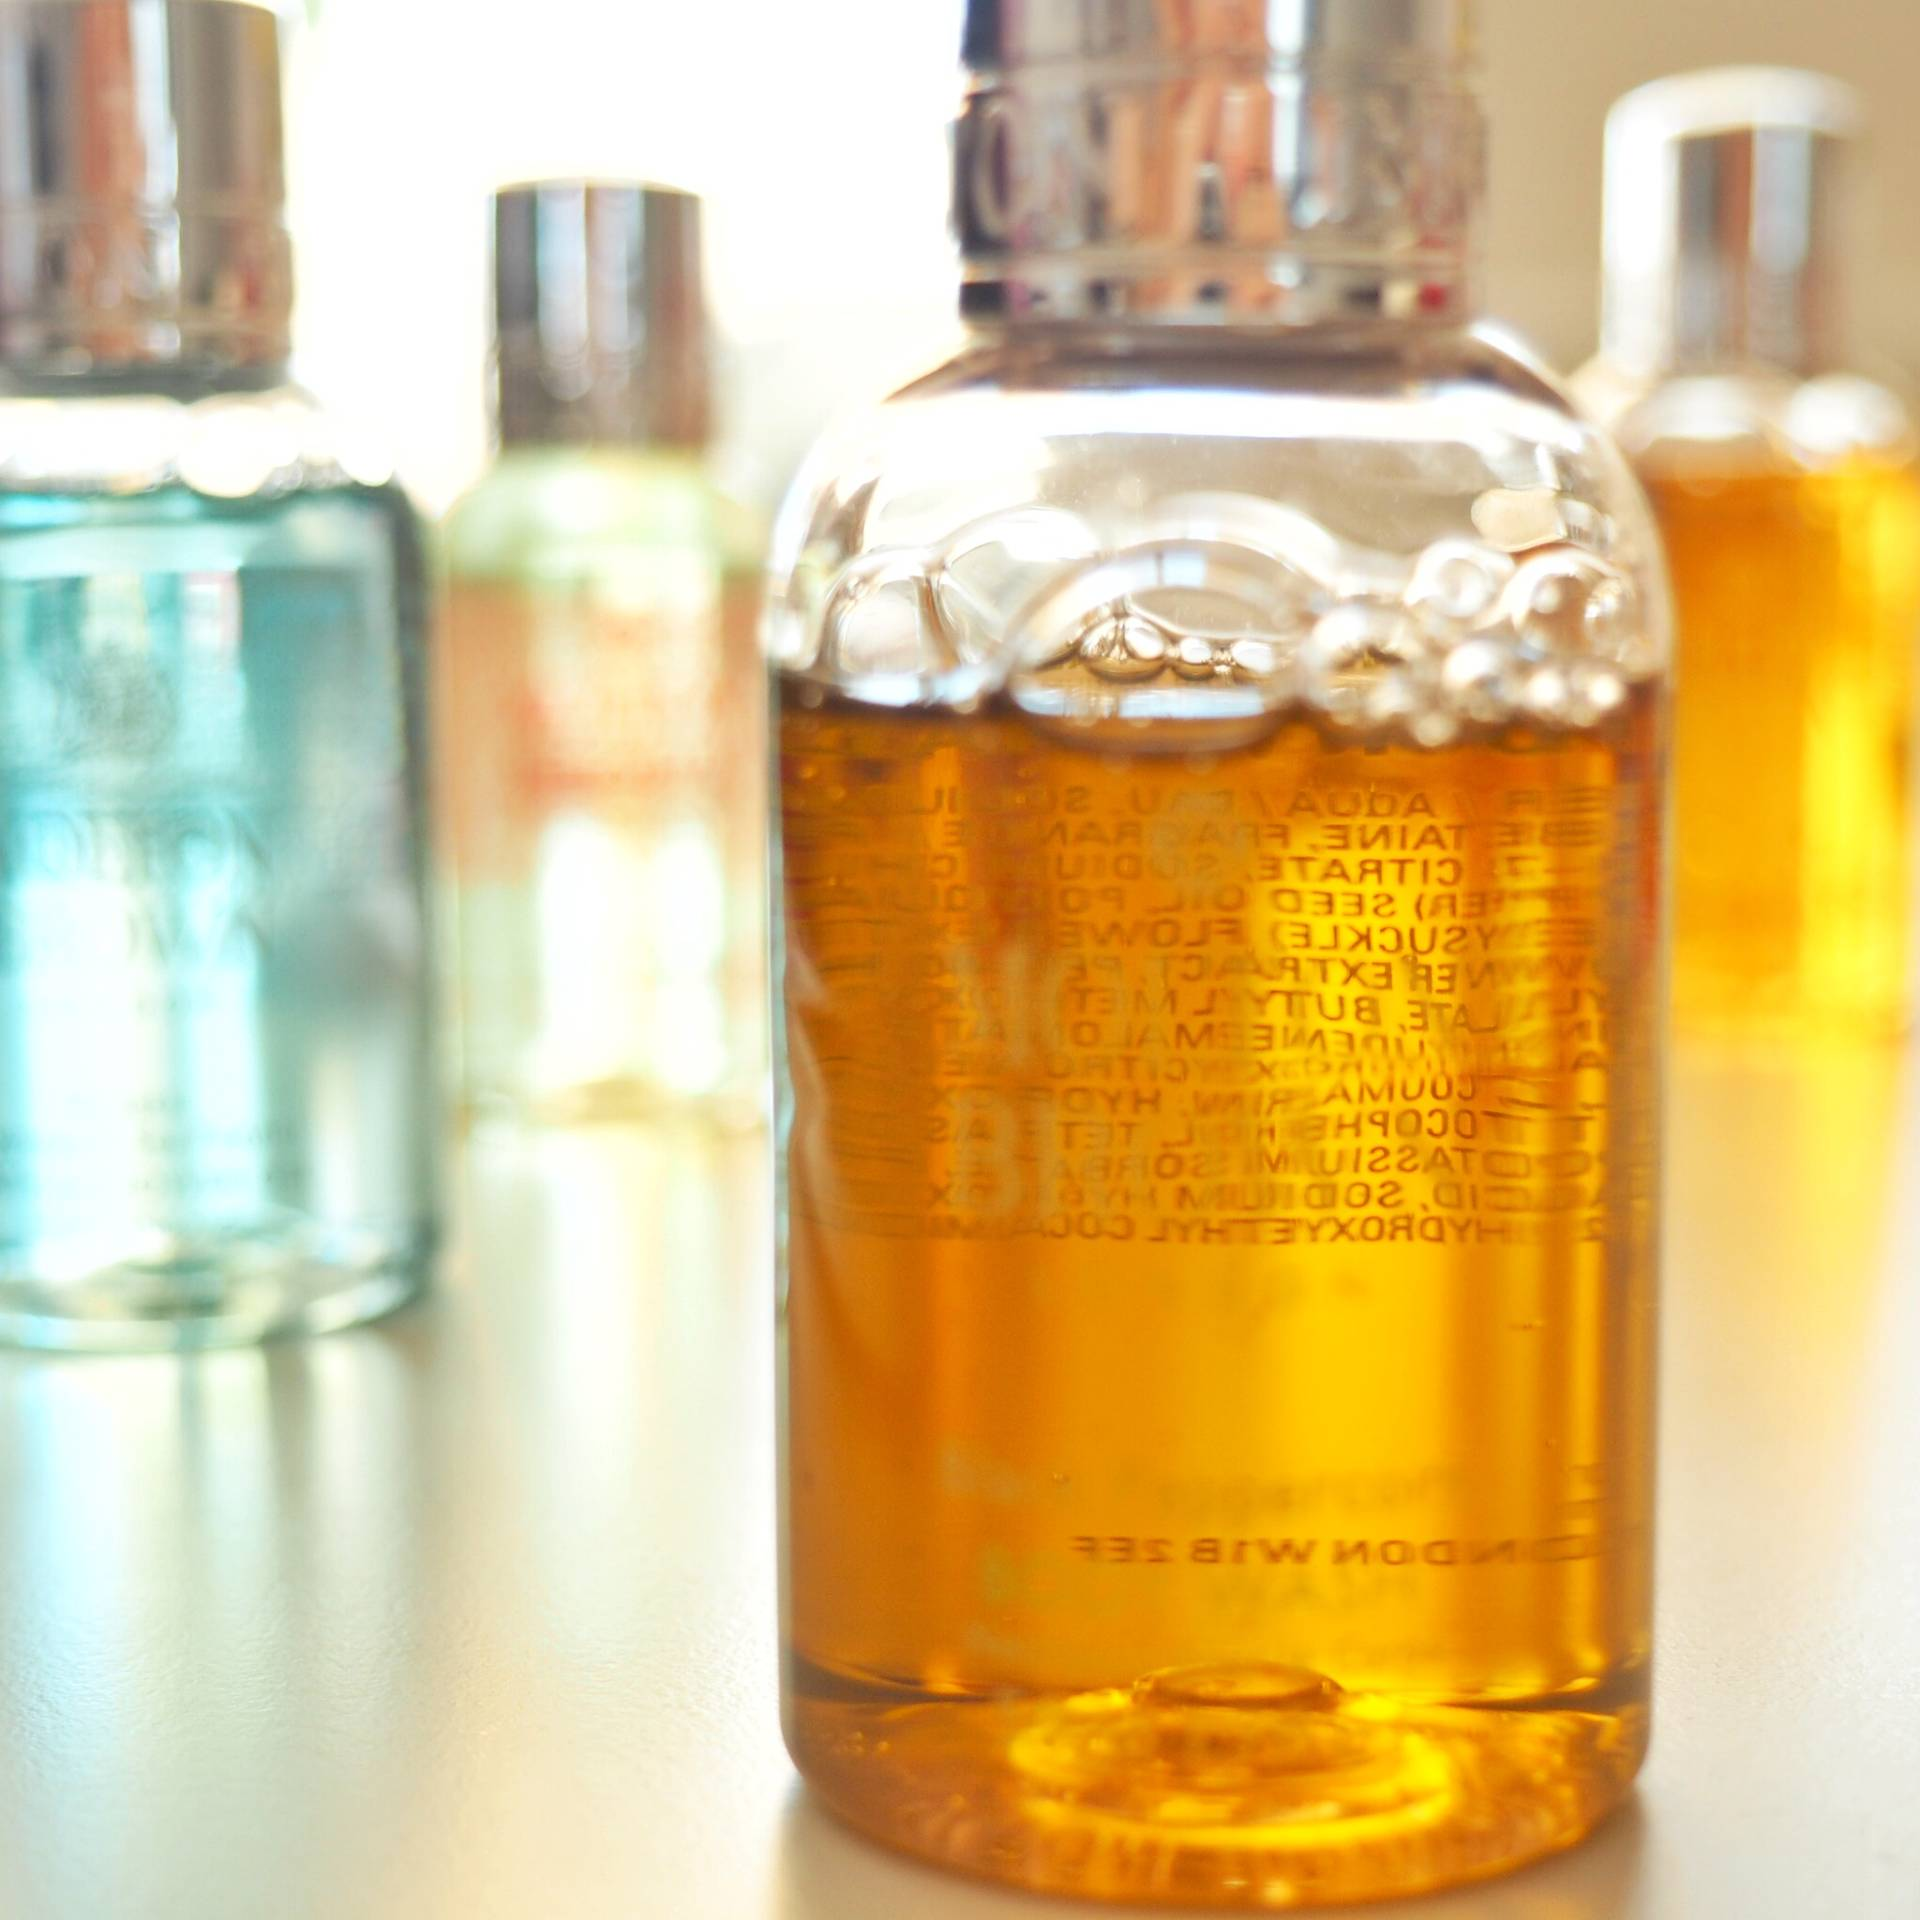 Molton Brown Mens Fragrances Review